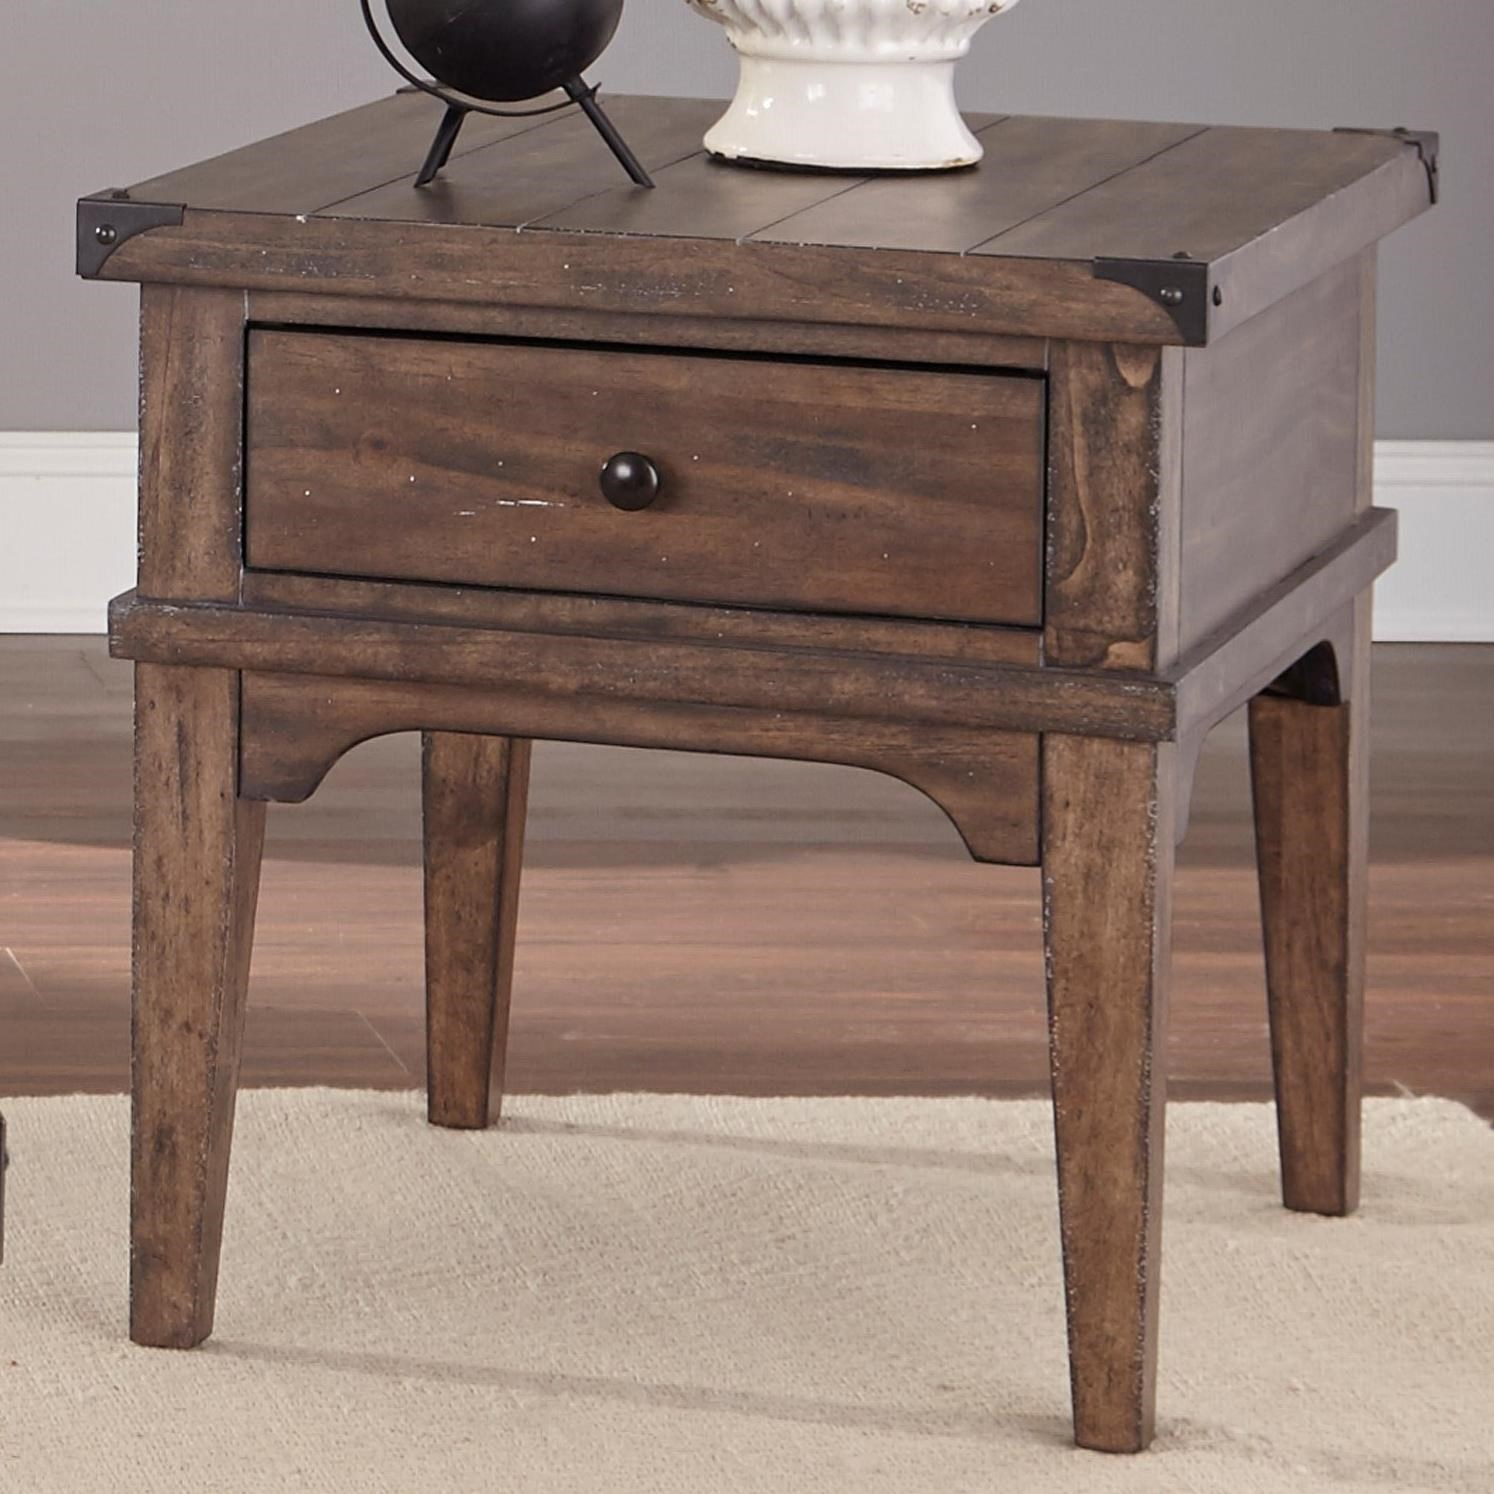 industrial casual end table with one drawer liberty furniture products color aspen skies occ wolf tables kmart kids boots what acme pulaski manufacturer website glass toronto